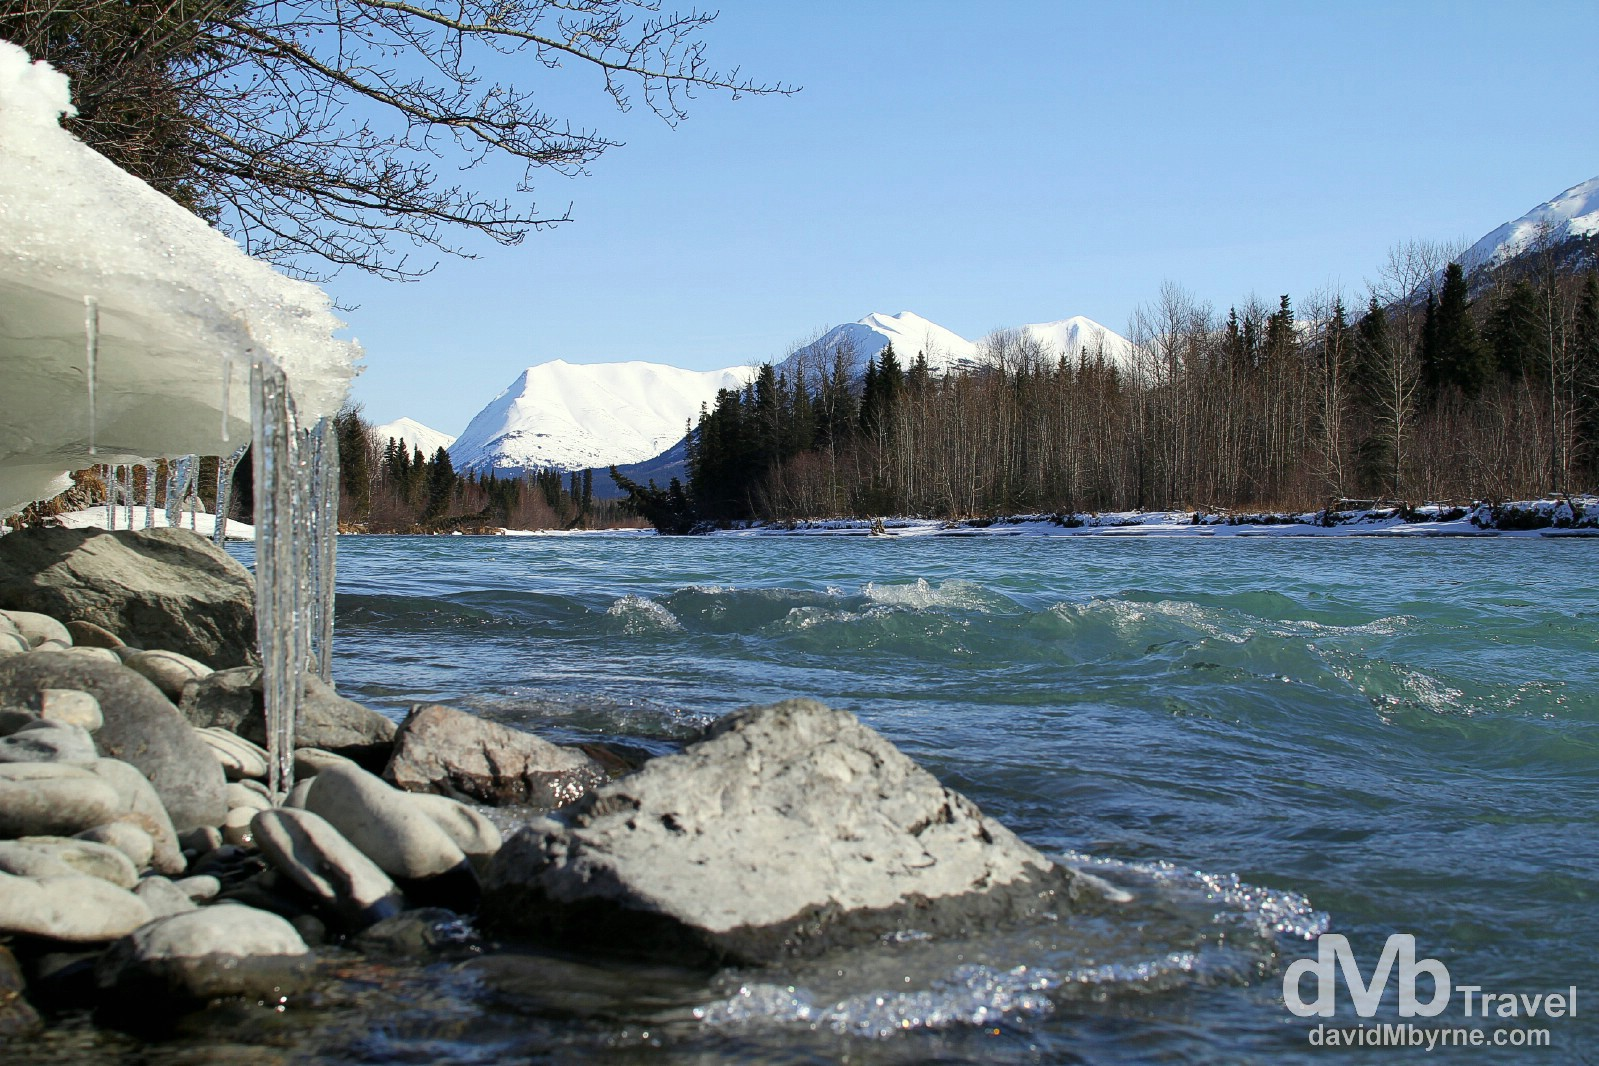 Ice hangs from a snowy overhang by a river beside the Sterling Highway near Kenai National Wildlife Refuge on the Kenai Peninsula, Alaska, USA. March 18th 2013.